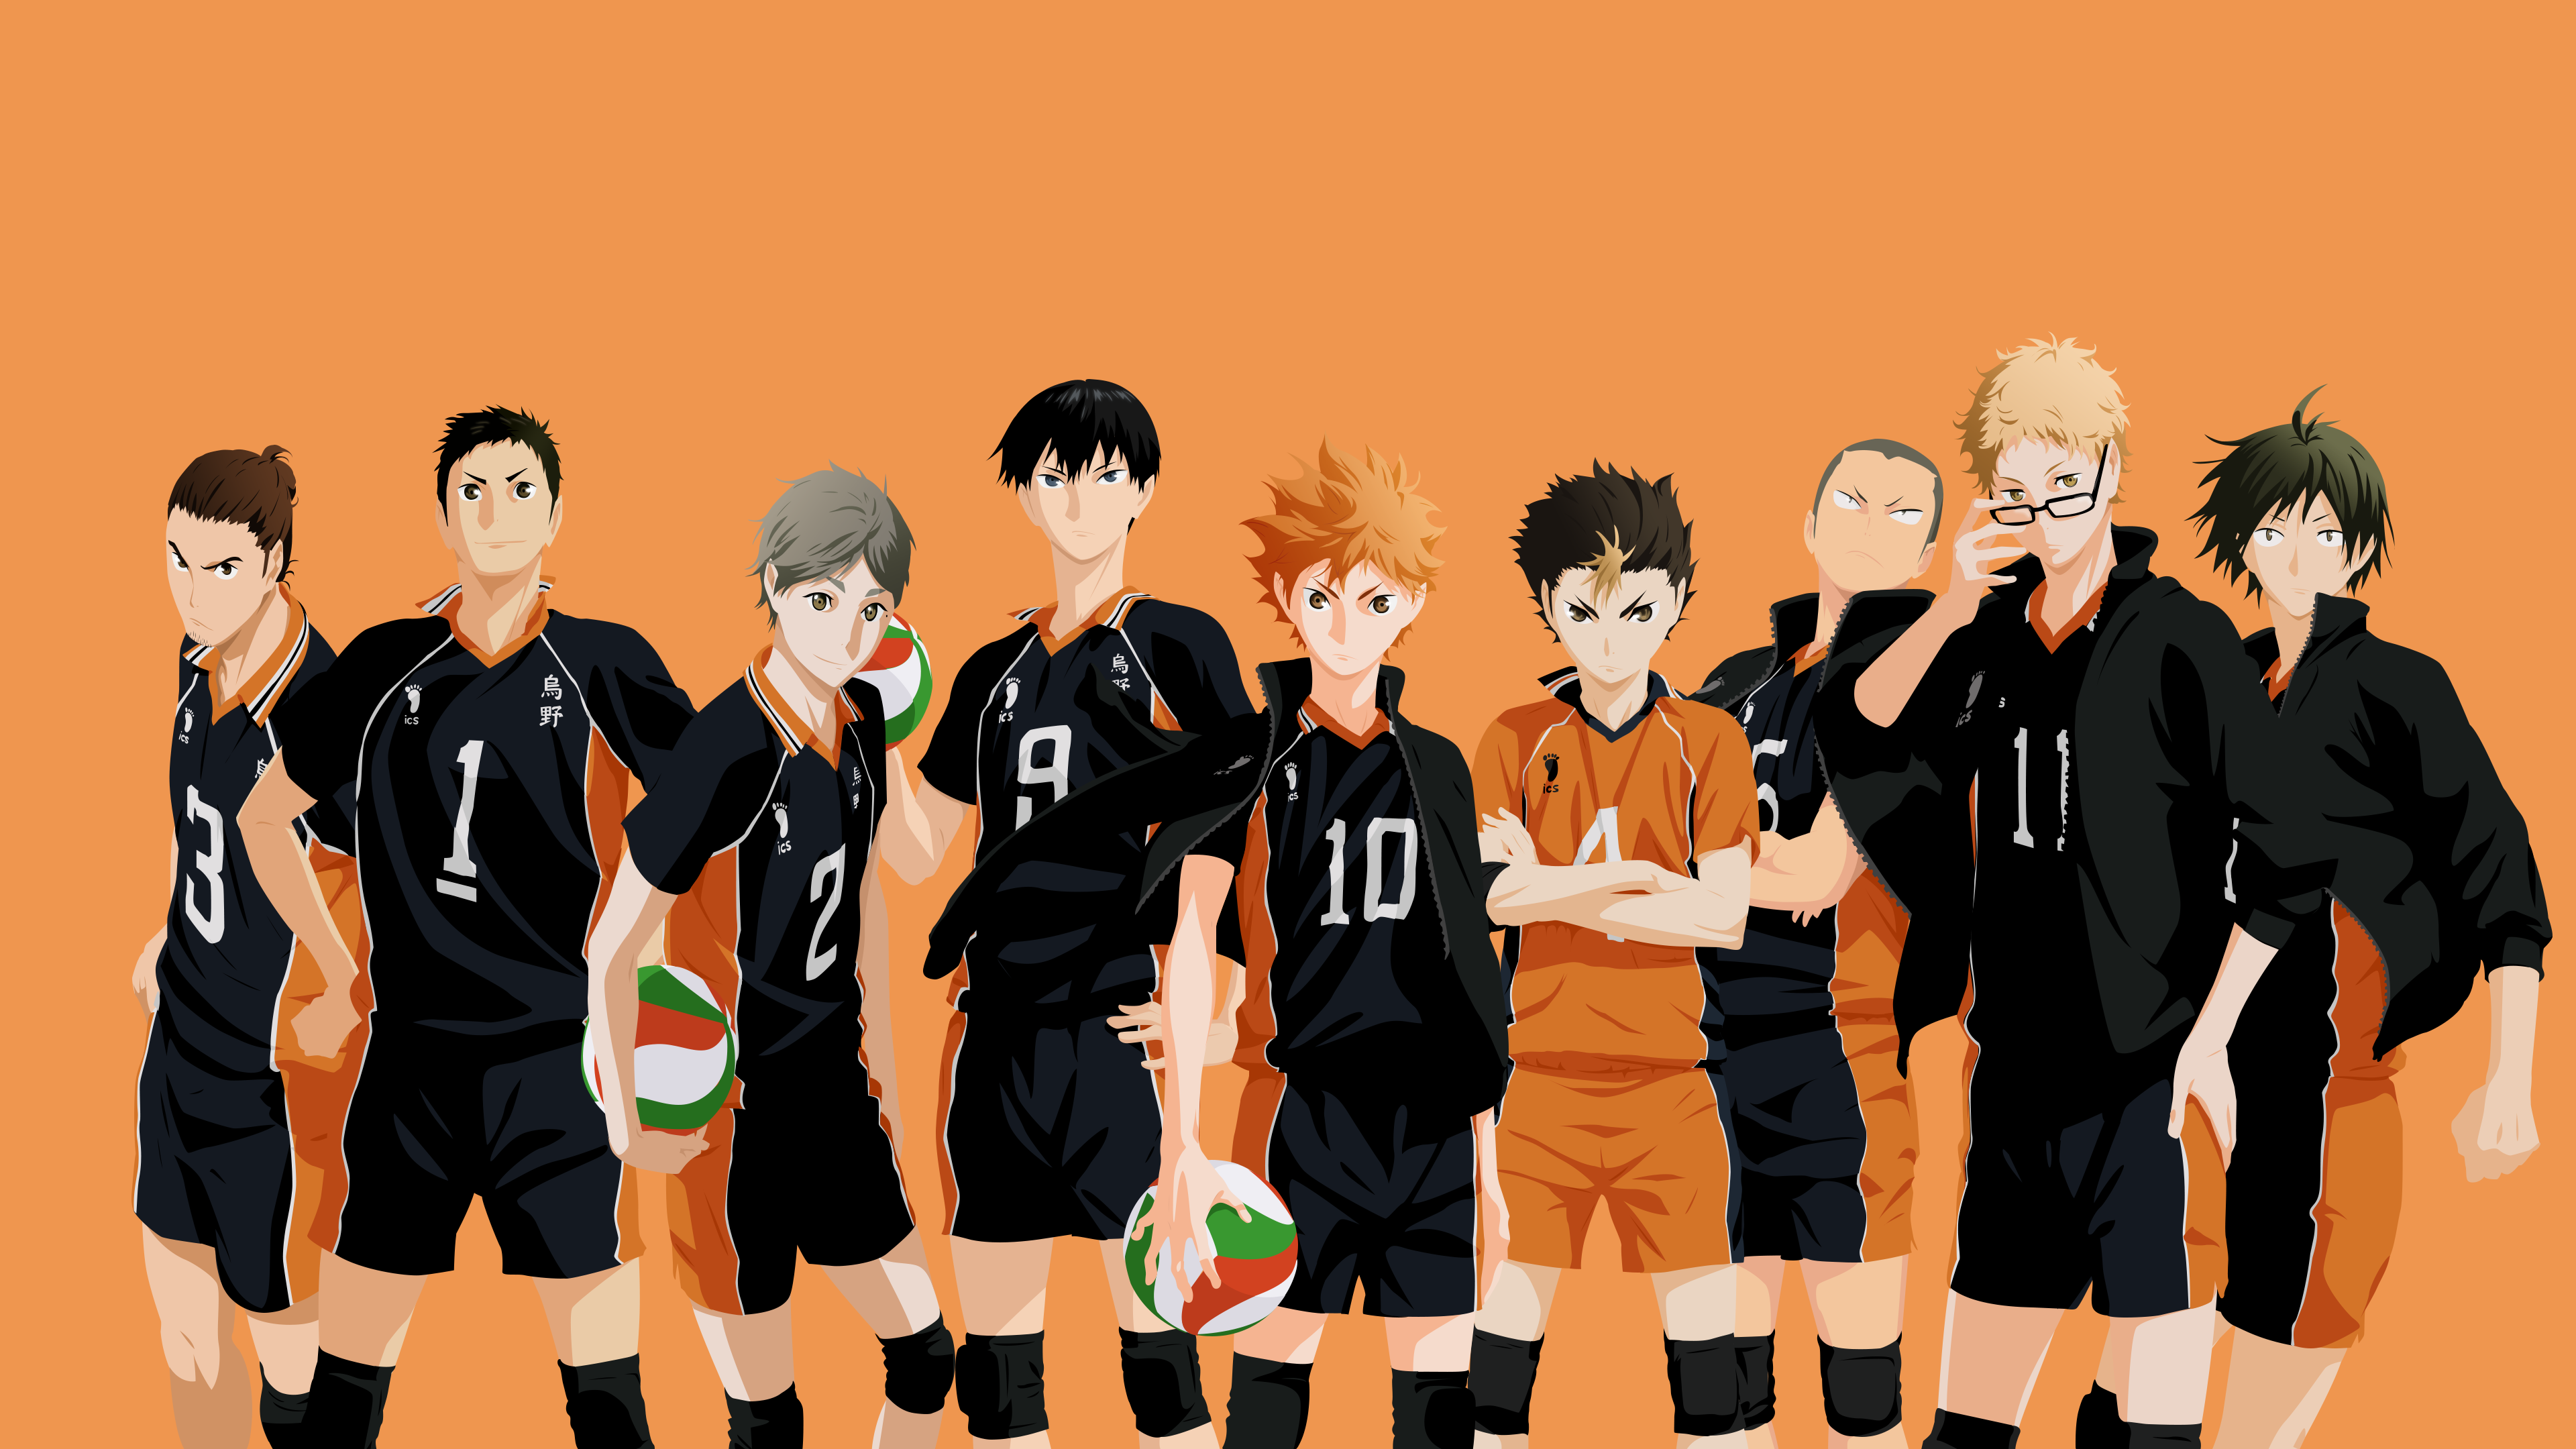 Haikyuu Haikyuu Wallpaper Hd Anime Wallpapers Cute Laptop Wallpaper